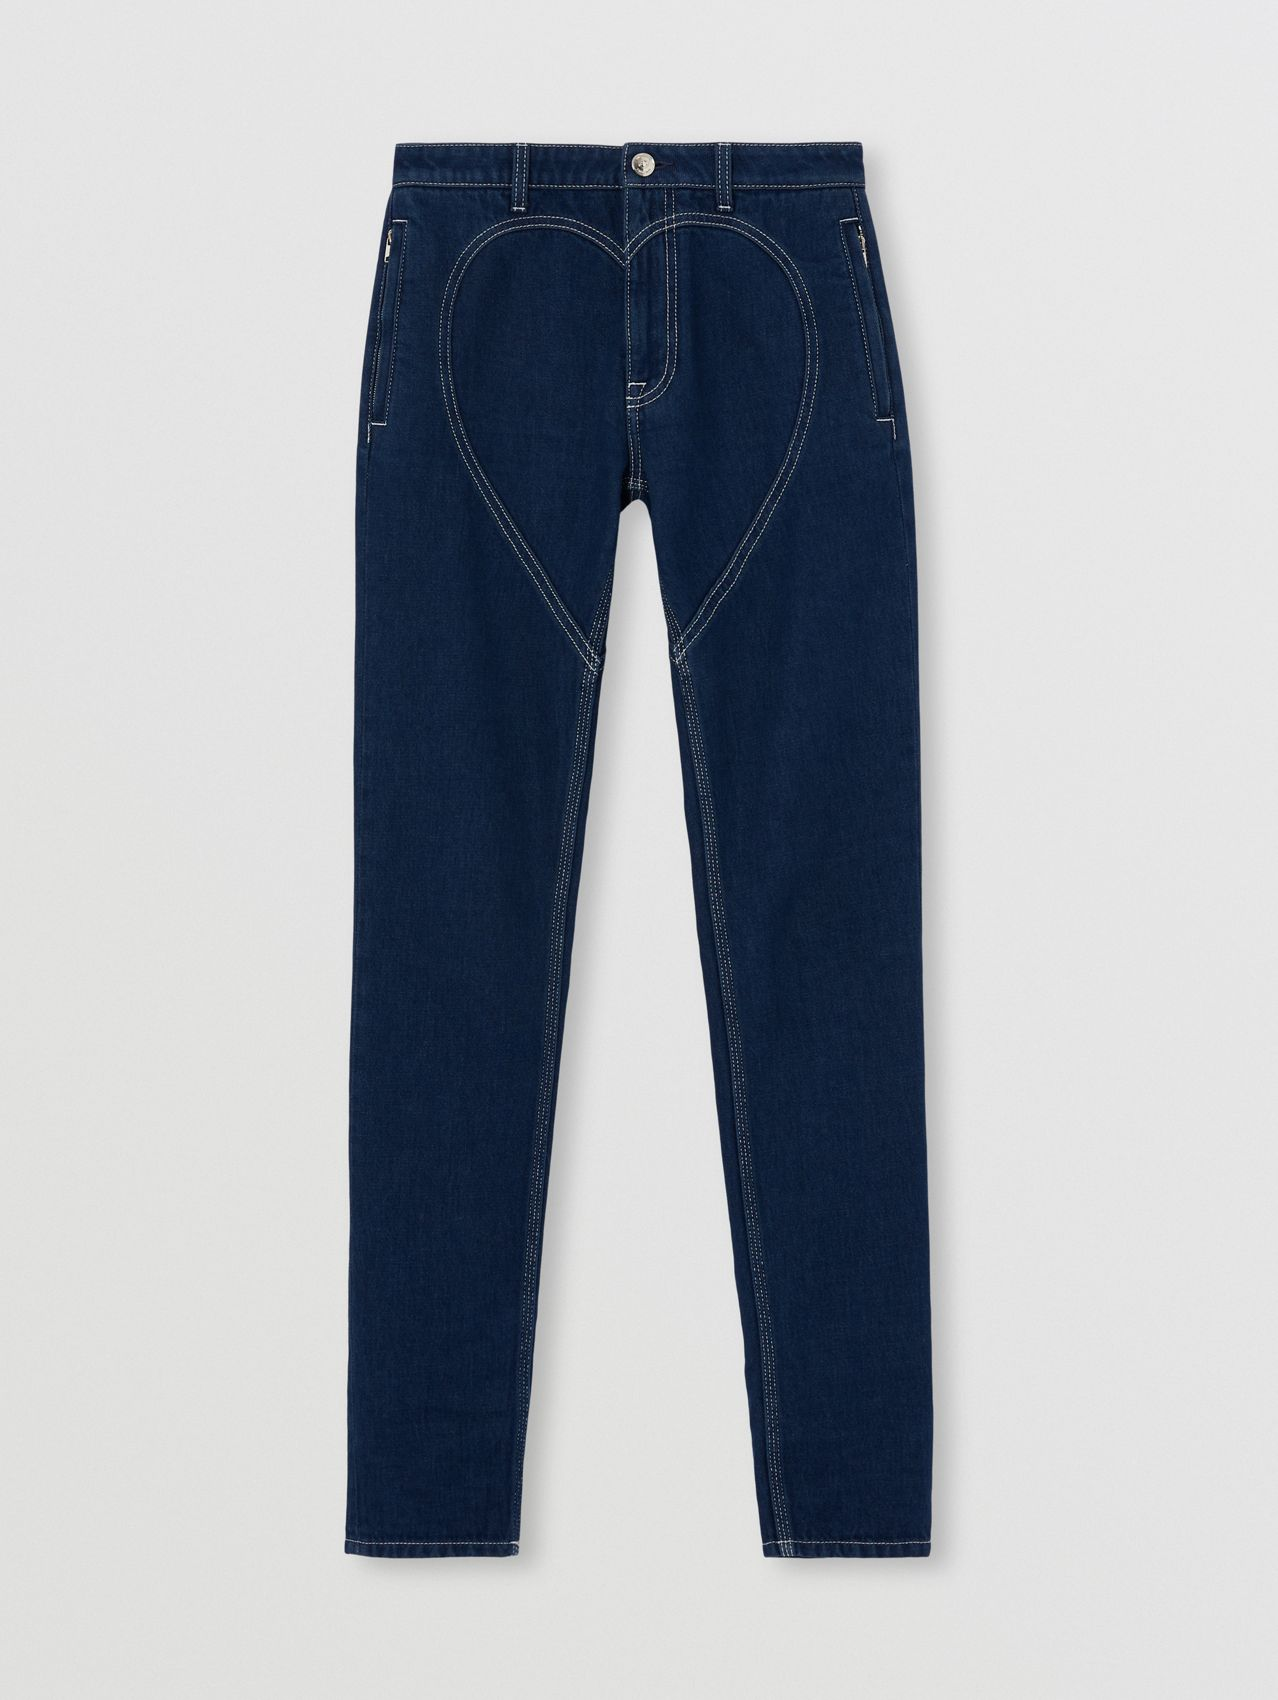 Skinny Fit Heart Motif Jeans in Midnight Navy